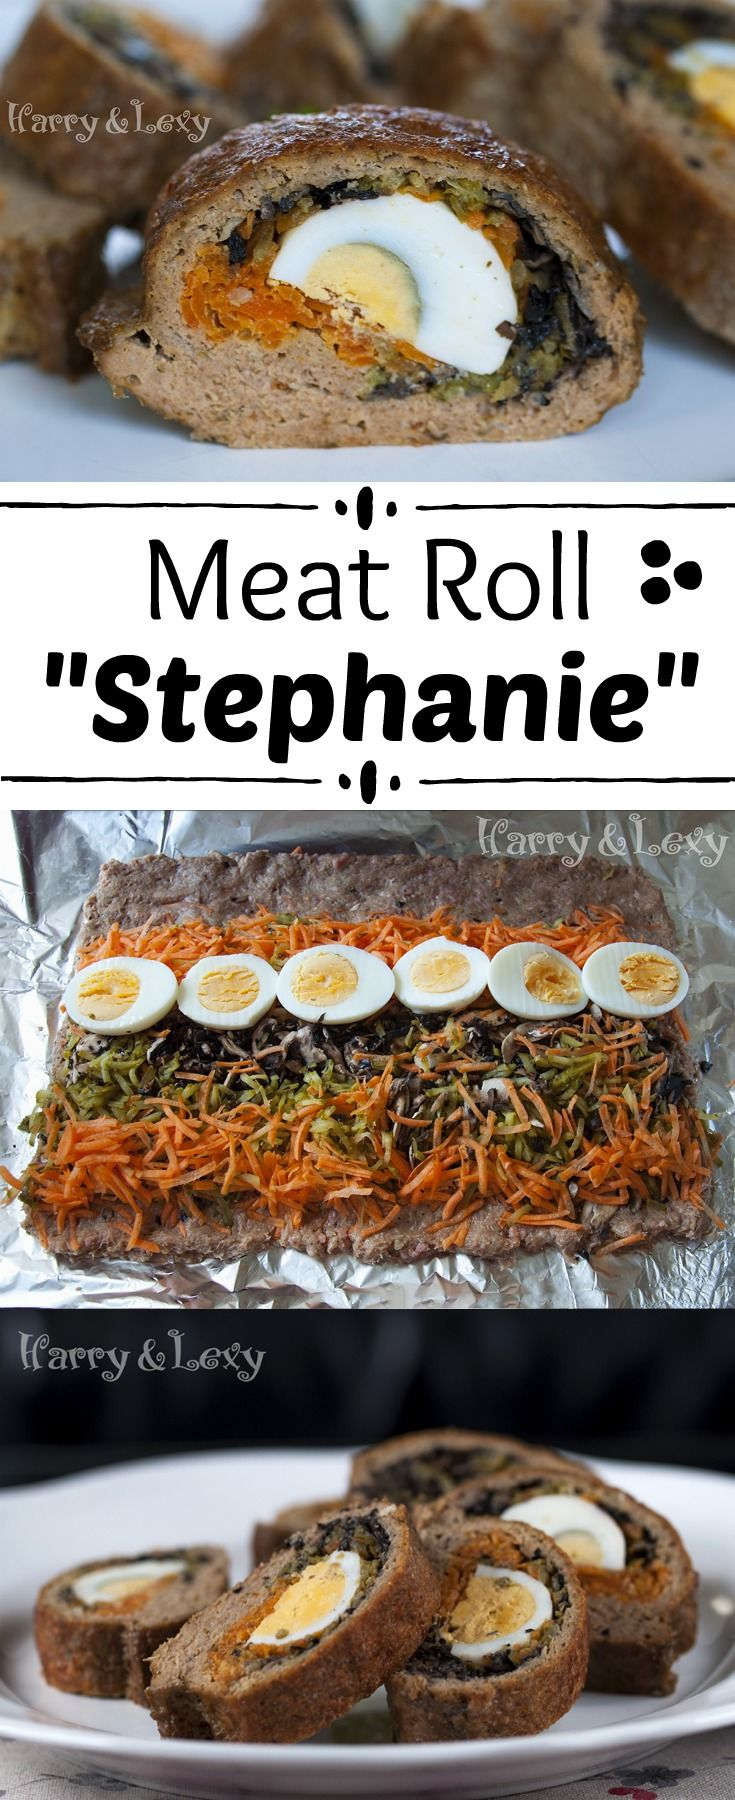 Meat roll stephanie recipe dinner ideas harry and lexys meat roll stephanie recipe dinner ideas harry and lexys workshop forumfinder Choice Image